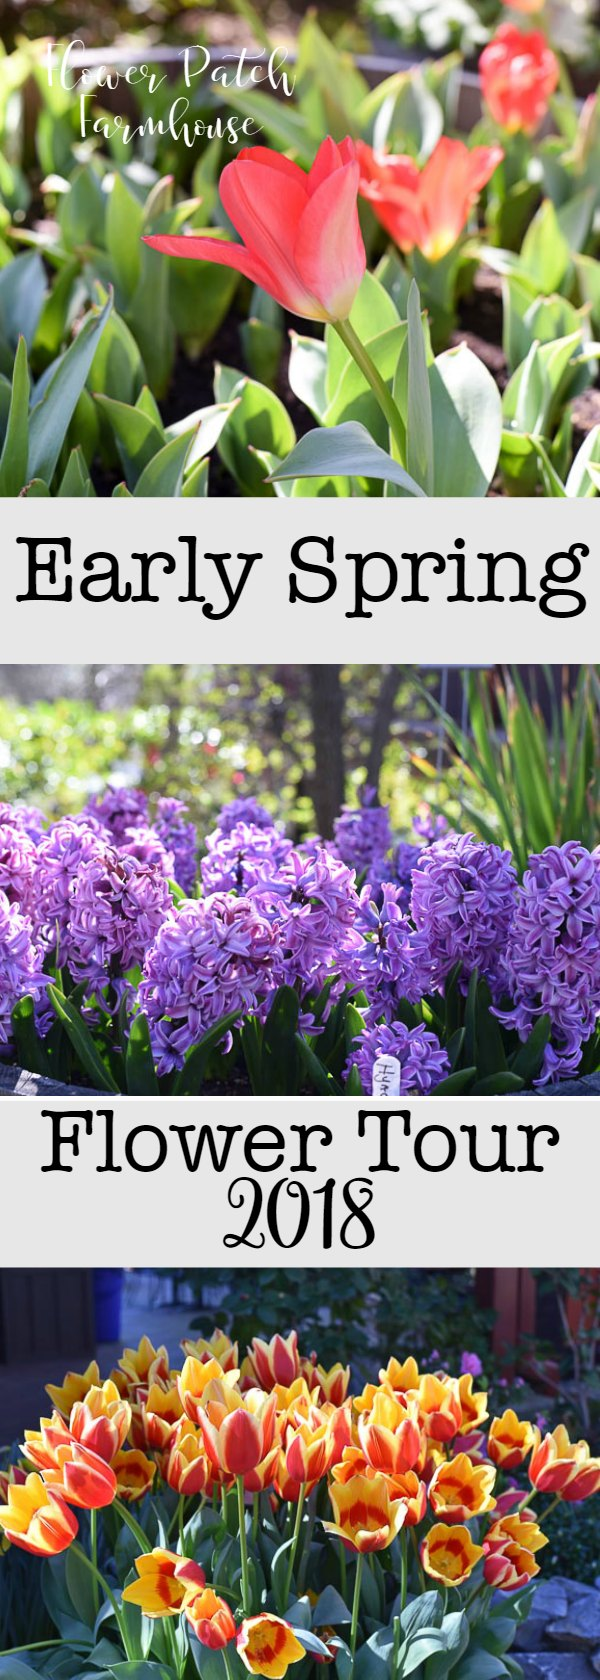 Enjoy some early Spring flowers while you wait out winter, lots of tulips, daffodils and sweet smelling hyacinths.  See how you can plant up barrels and containers with an abundance of blooms.